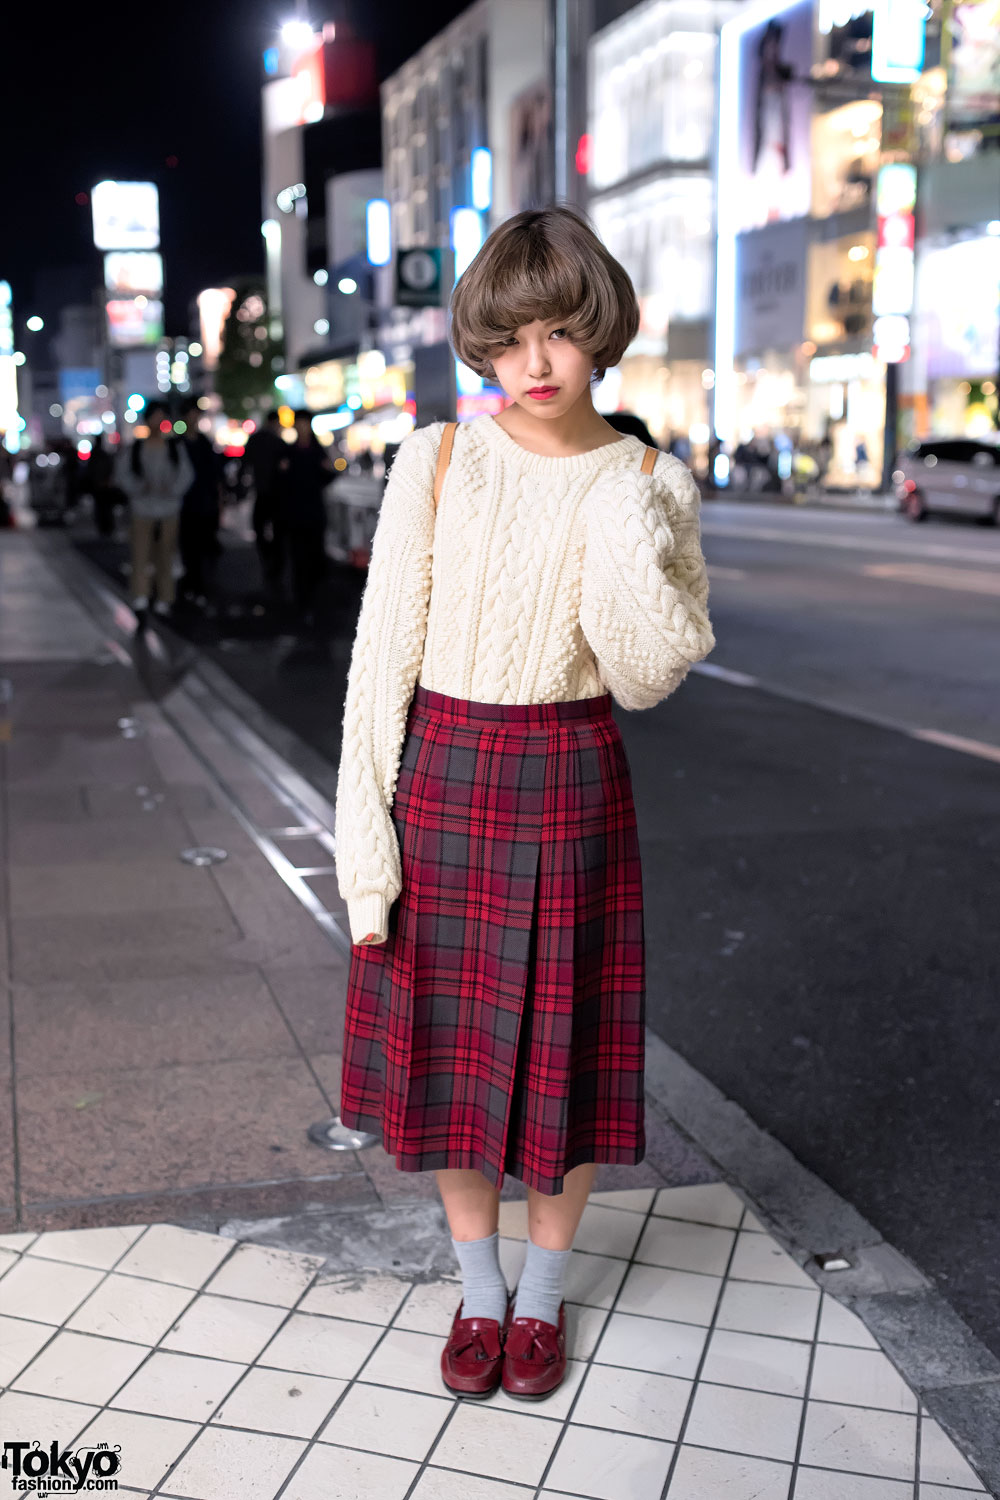 Oversized Cable Knit Sweater Plaid Skirt Loafers In Harajuku